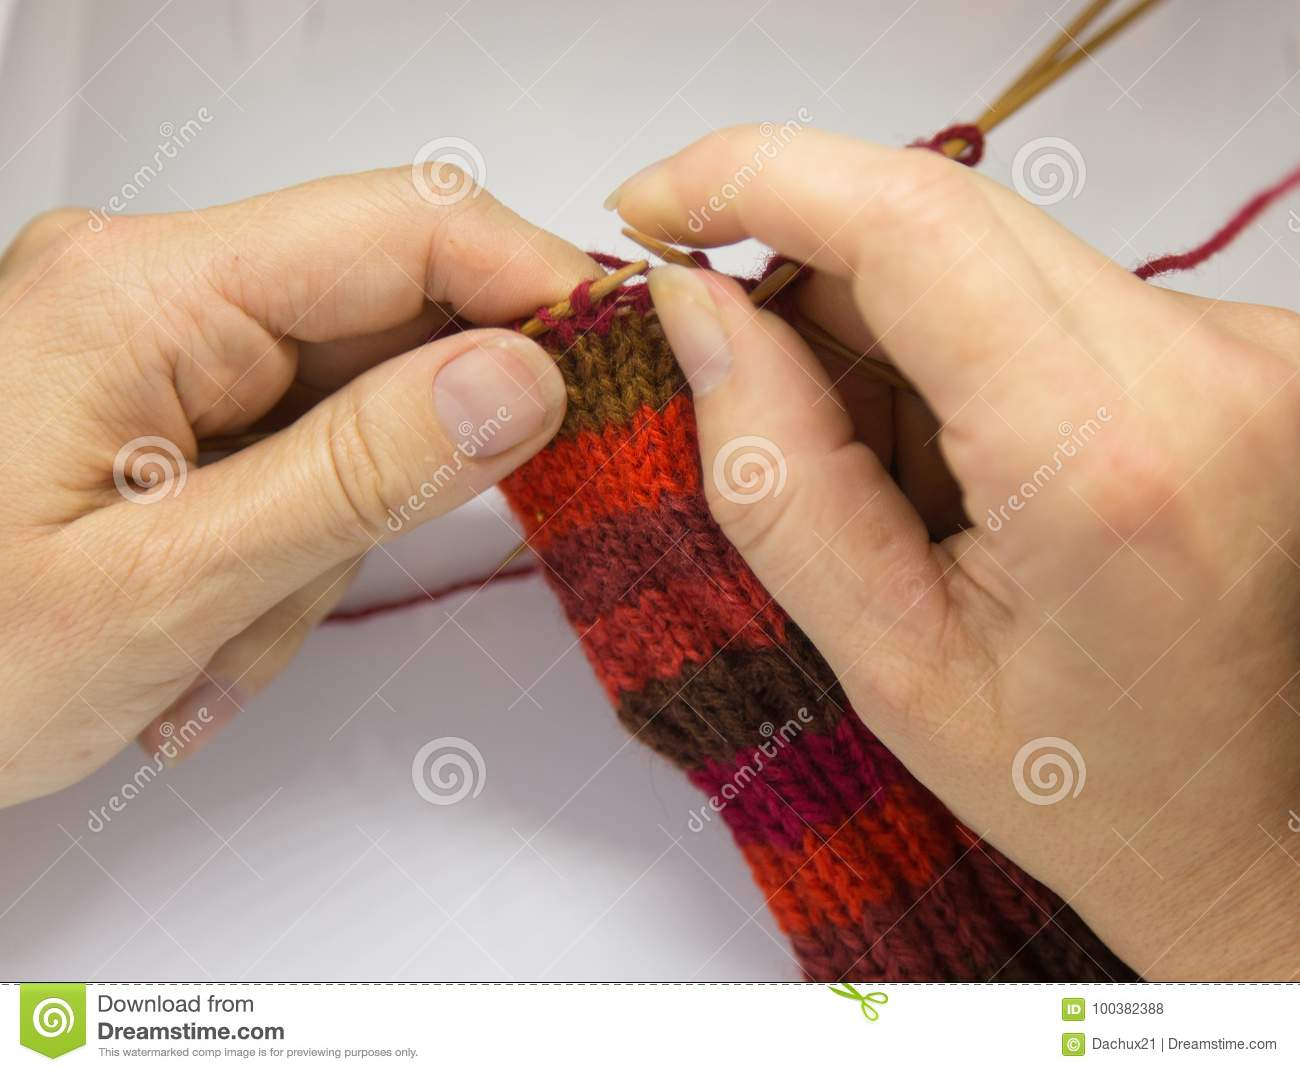 A woman knitting red woolen socks. Knitting close up on a white background. Hand crafts.